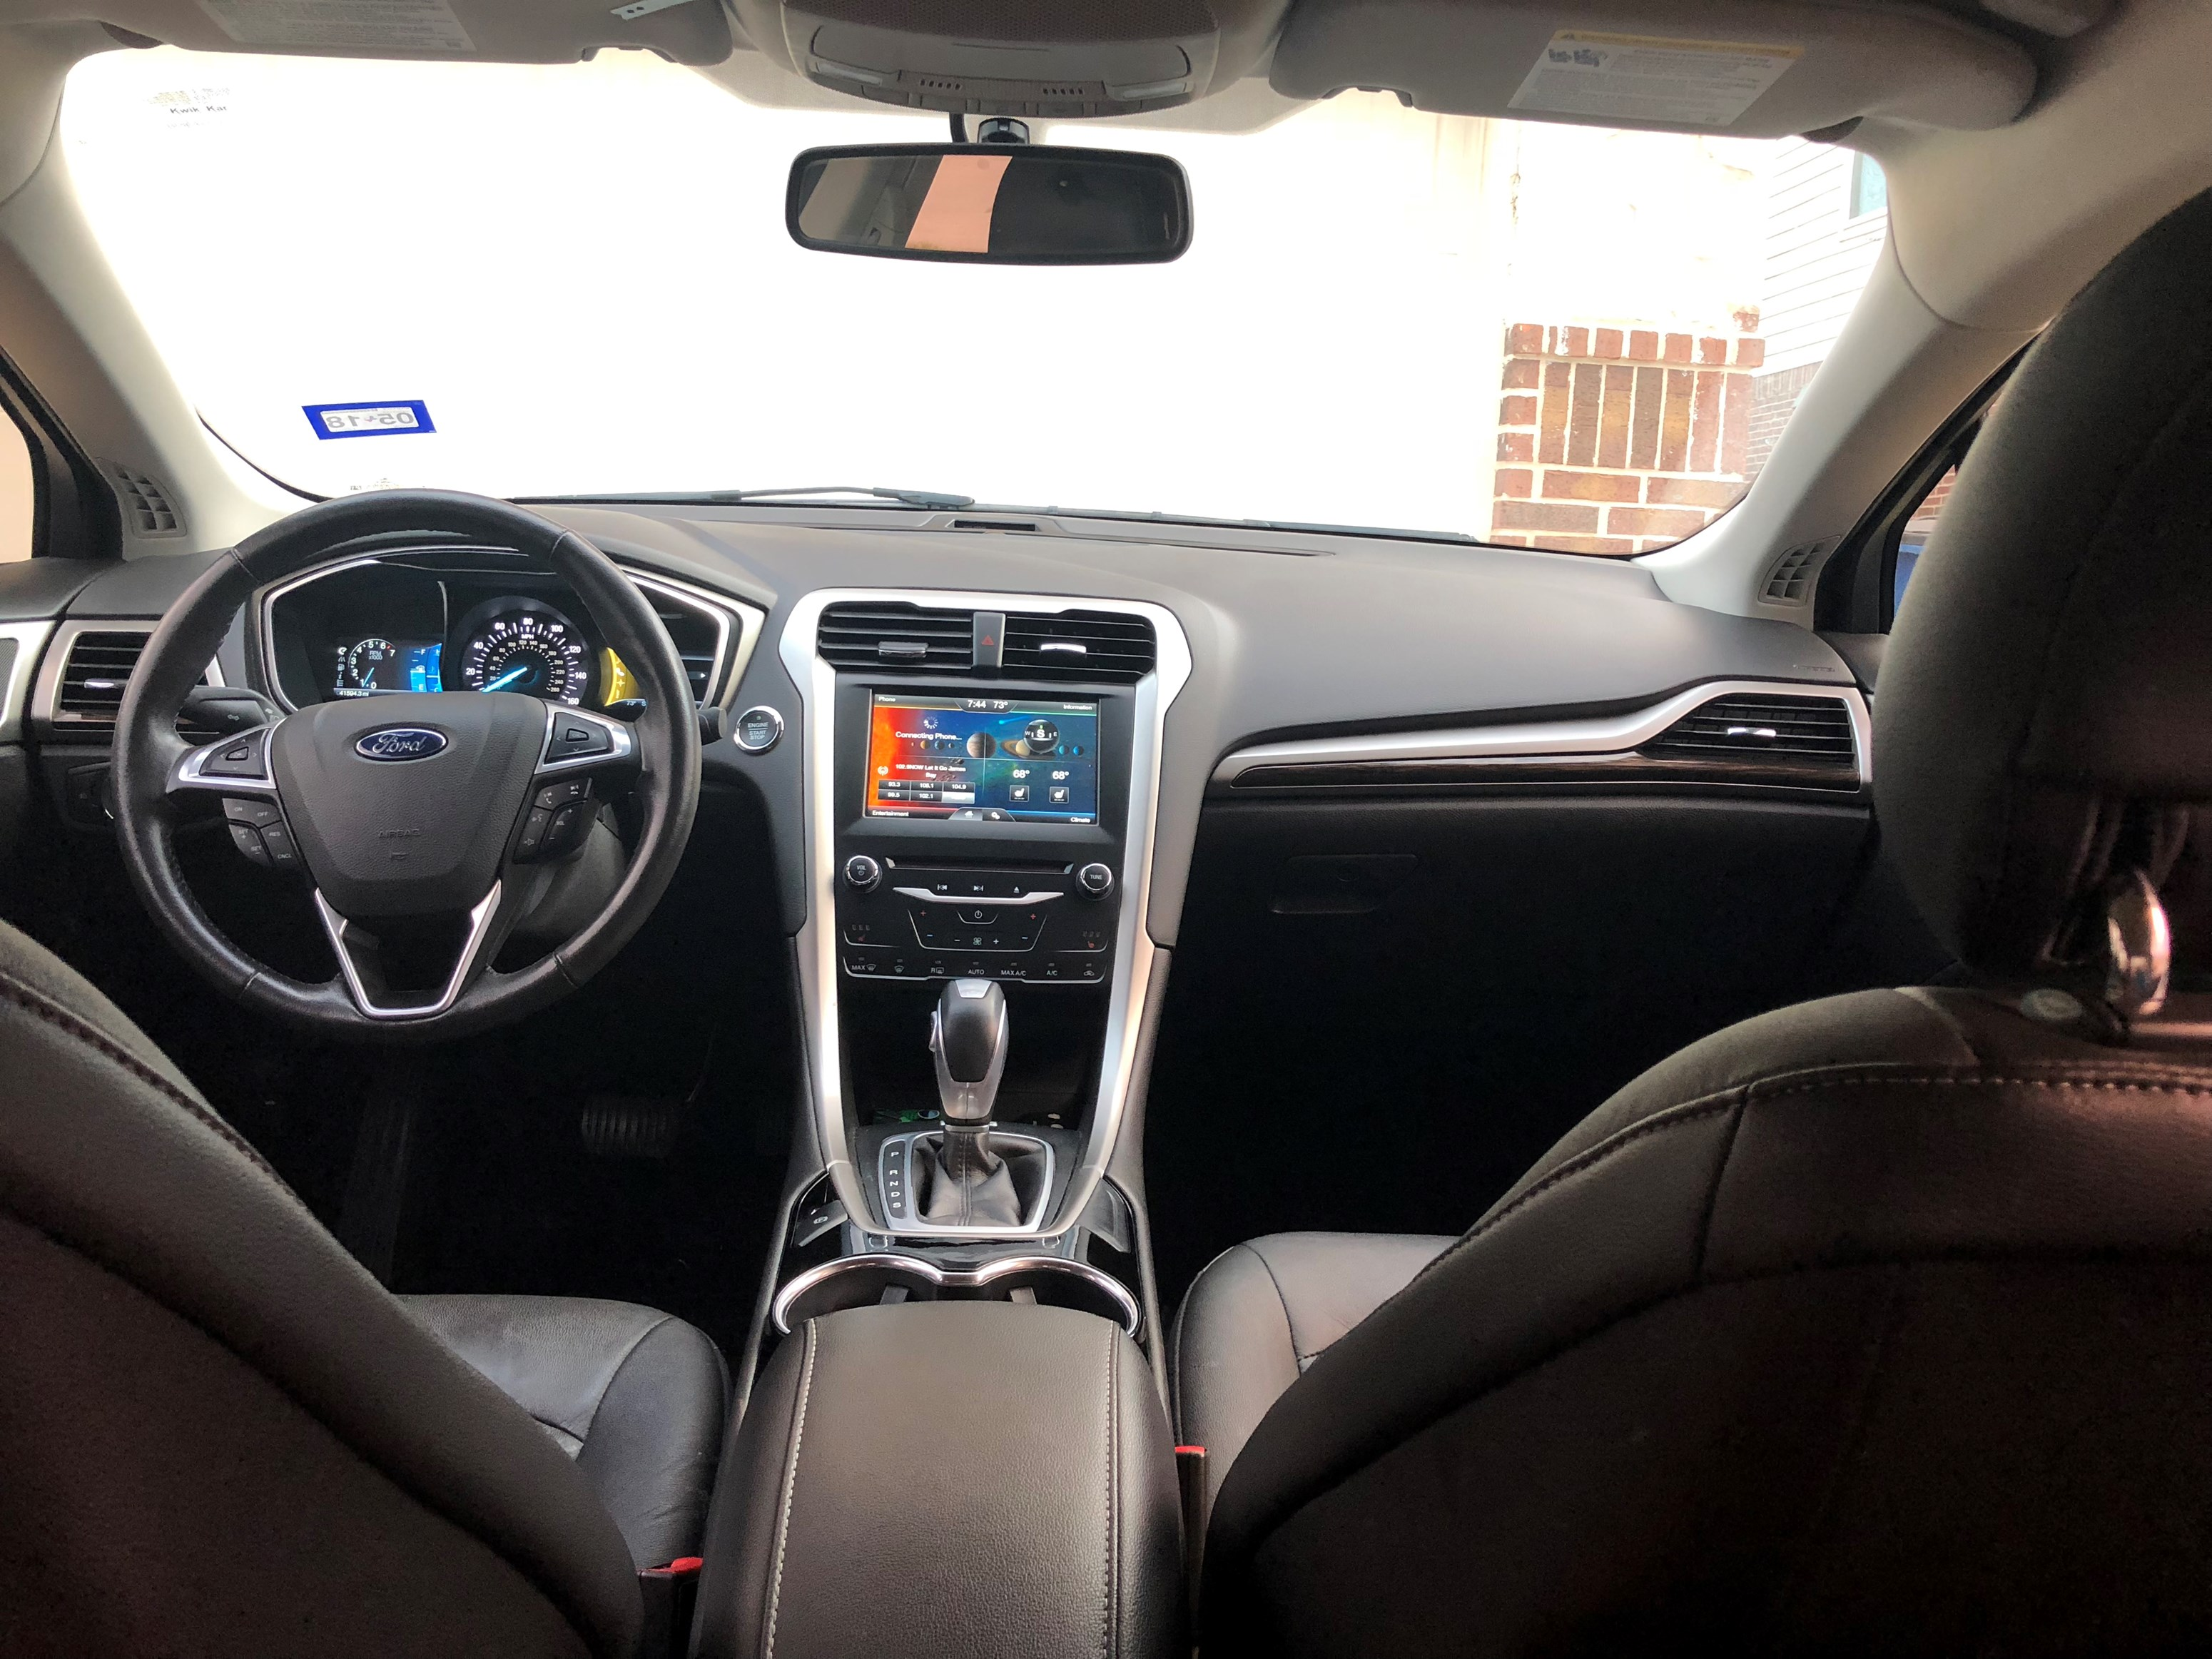 2014 Ford Fusion Ecoboost $ Used Ford Fusion Cars in Little